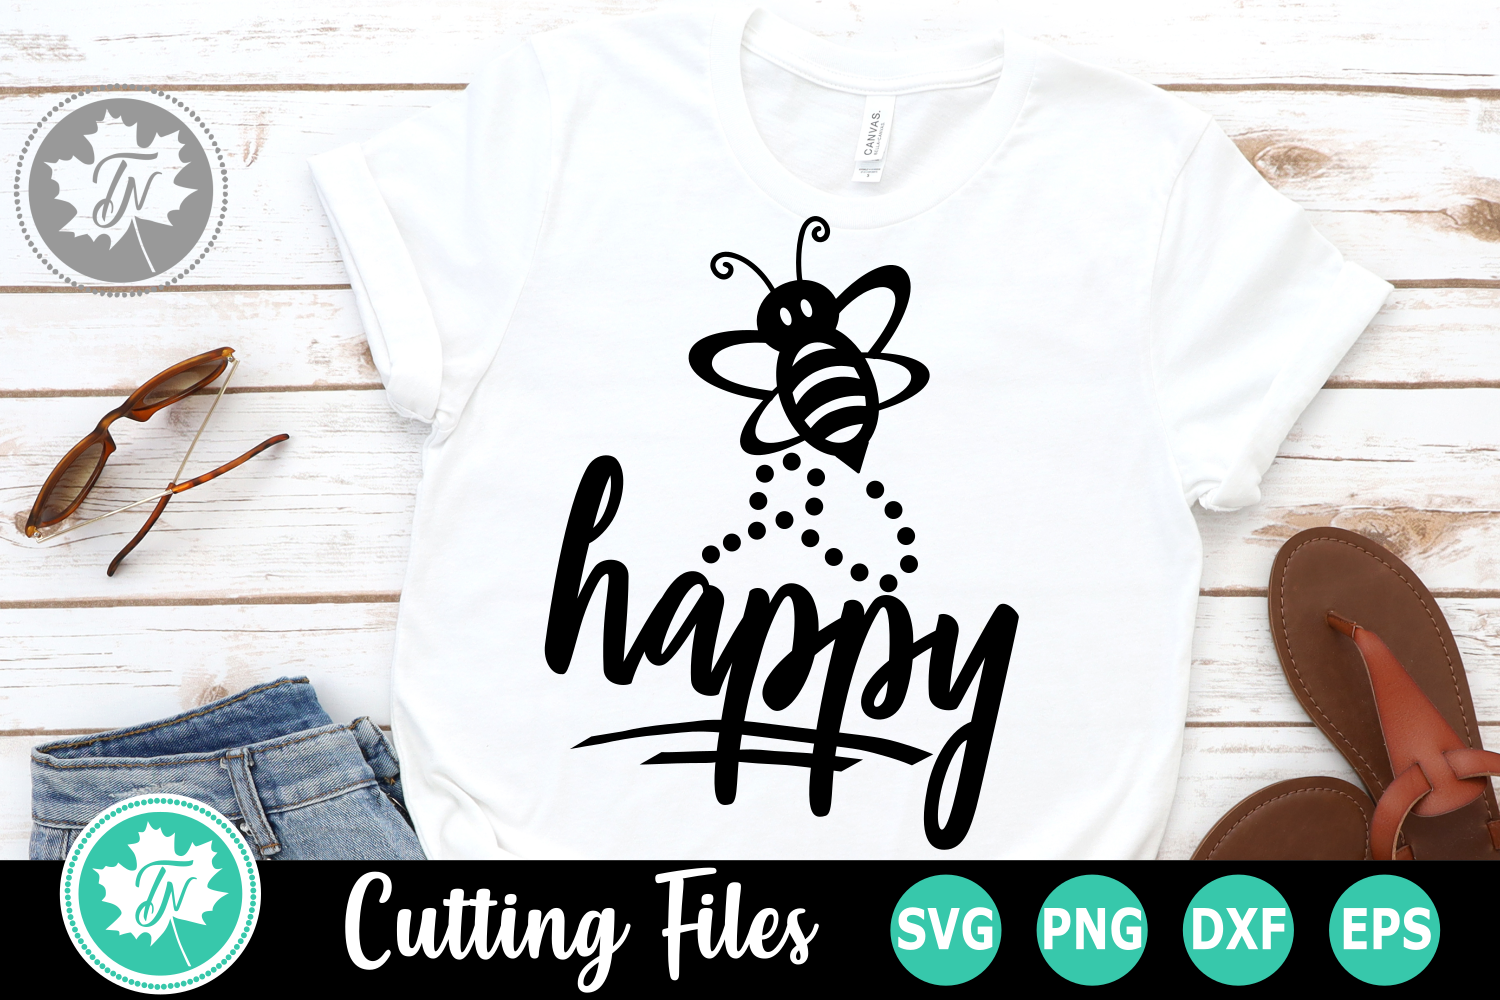 Bee Happy - An Inspirational SVG Cut File example image 1